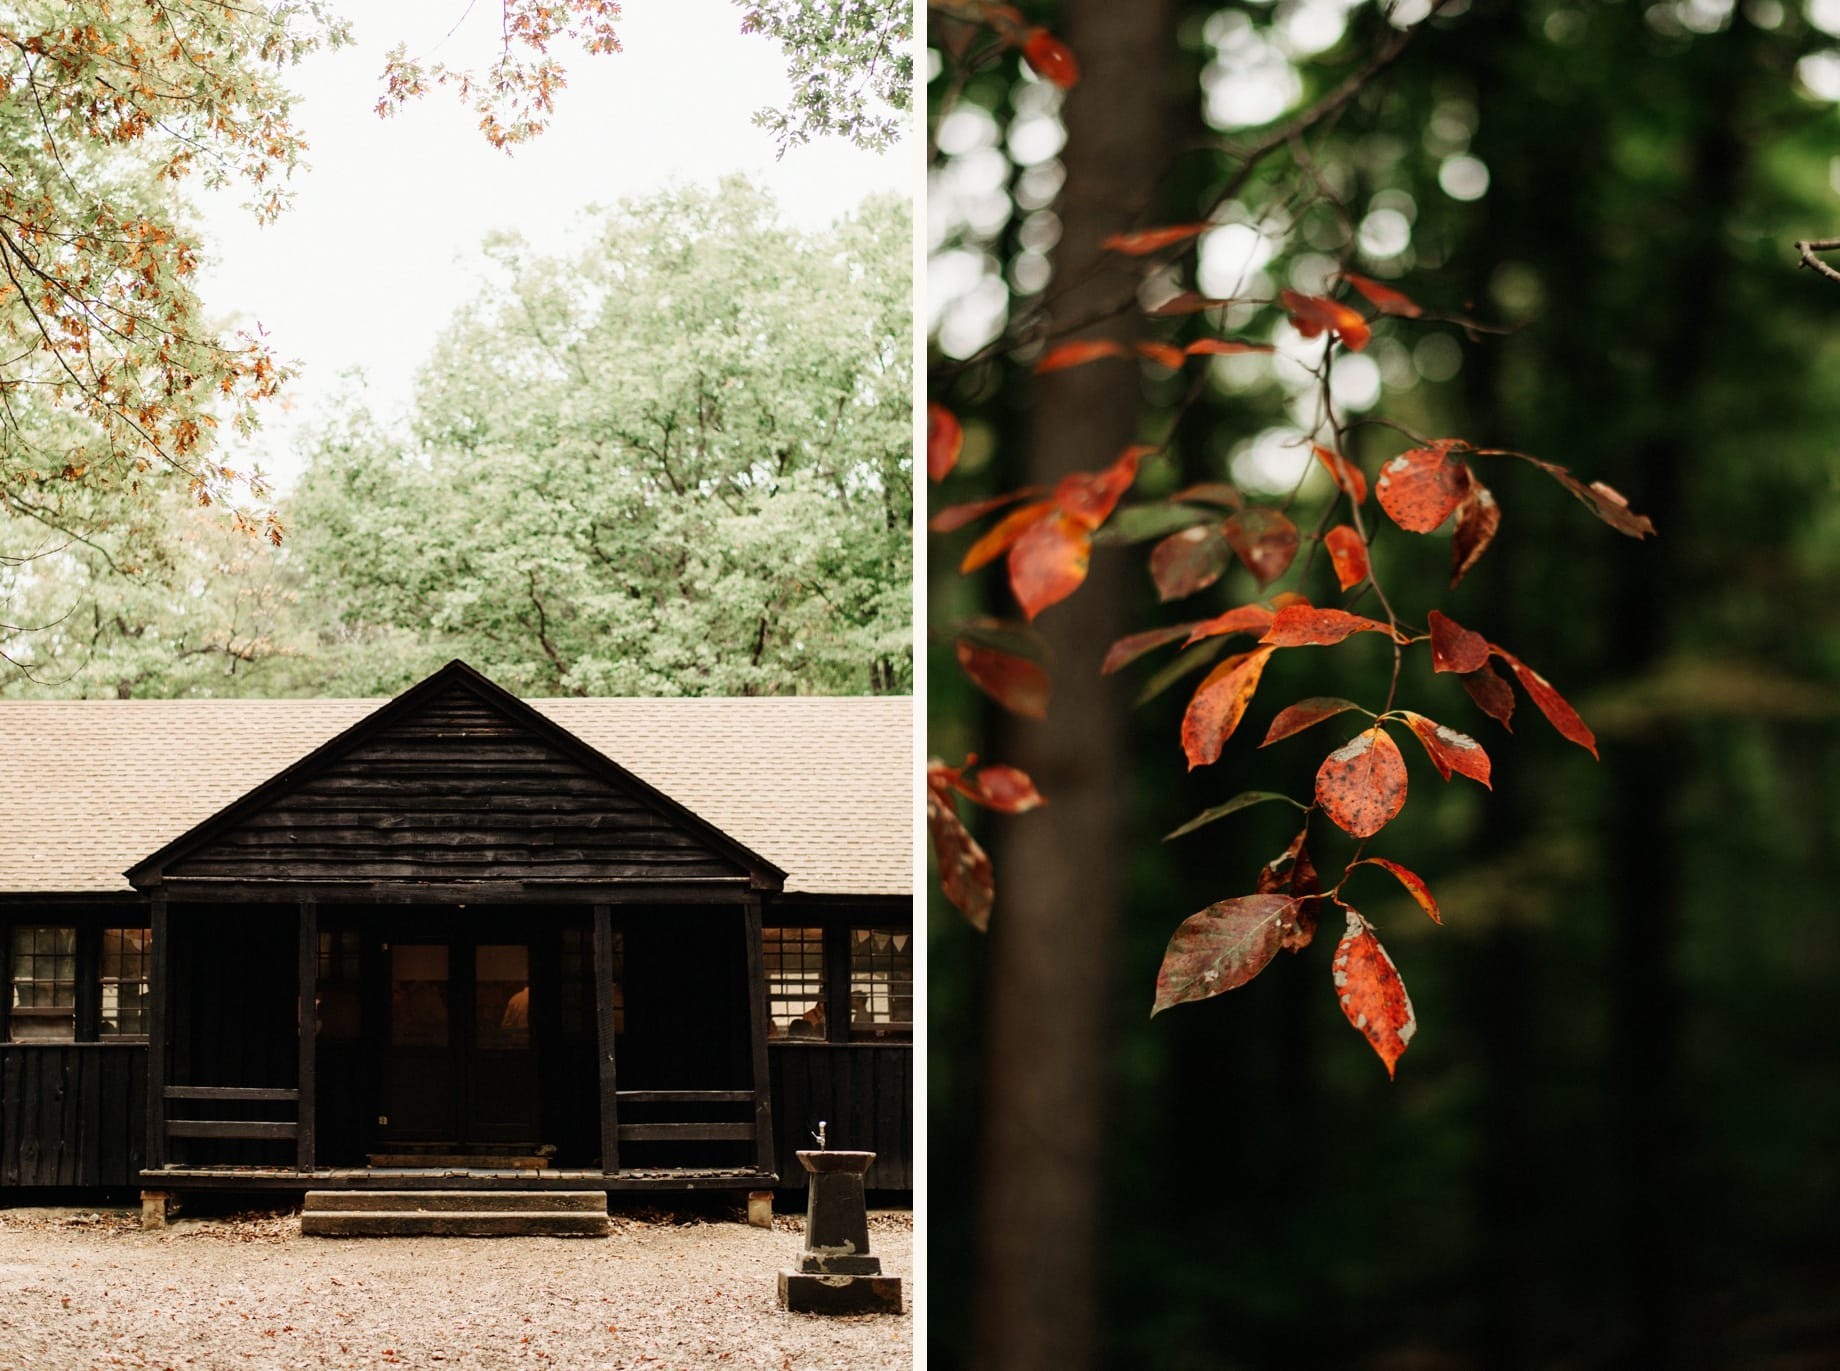 Exterior shots of outbuildings at Prince William Forest Park